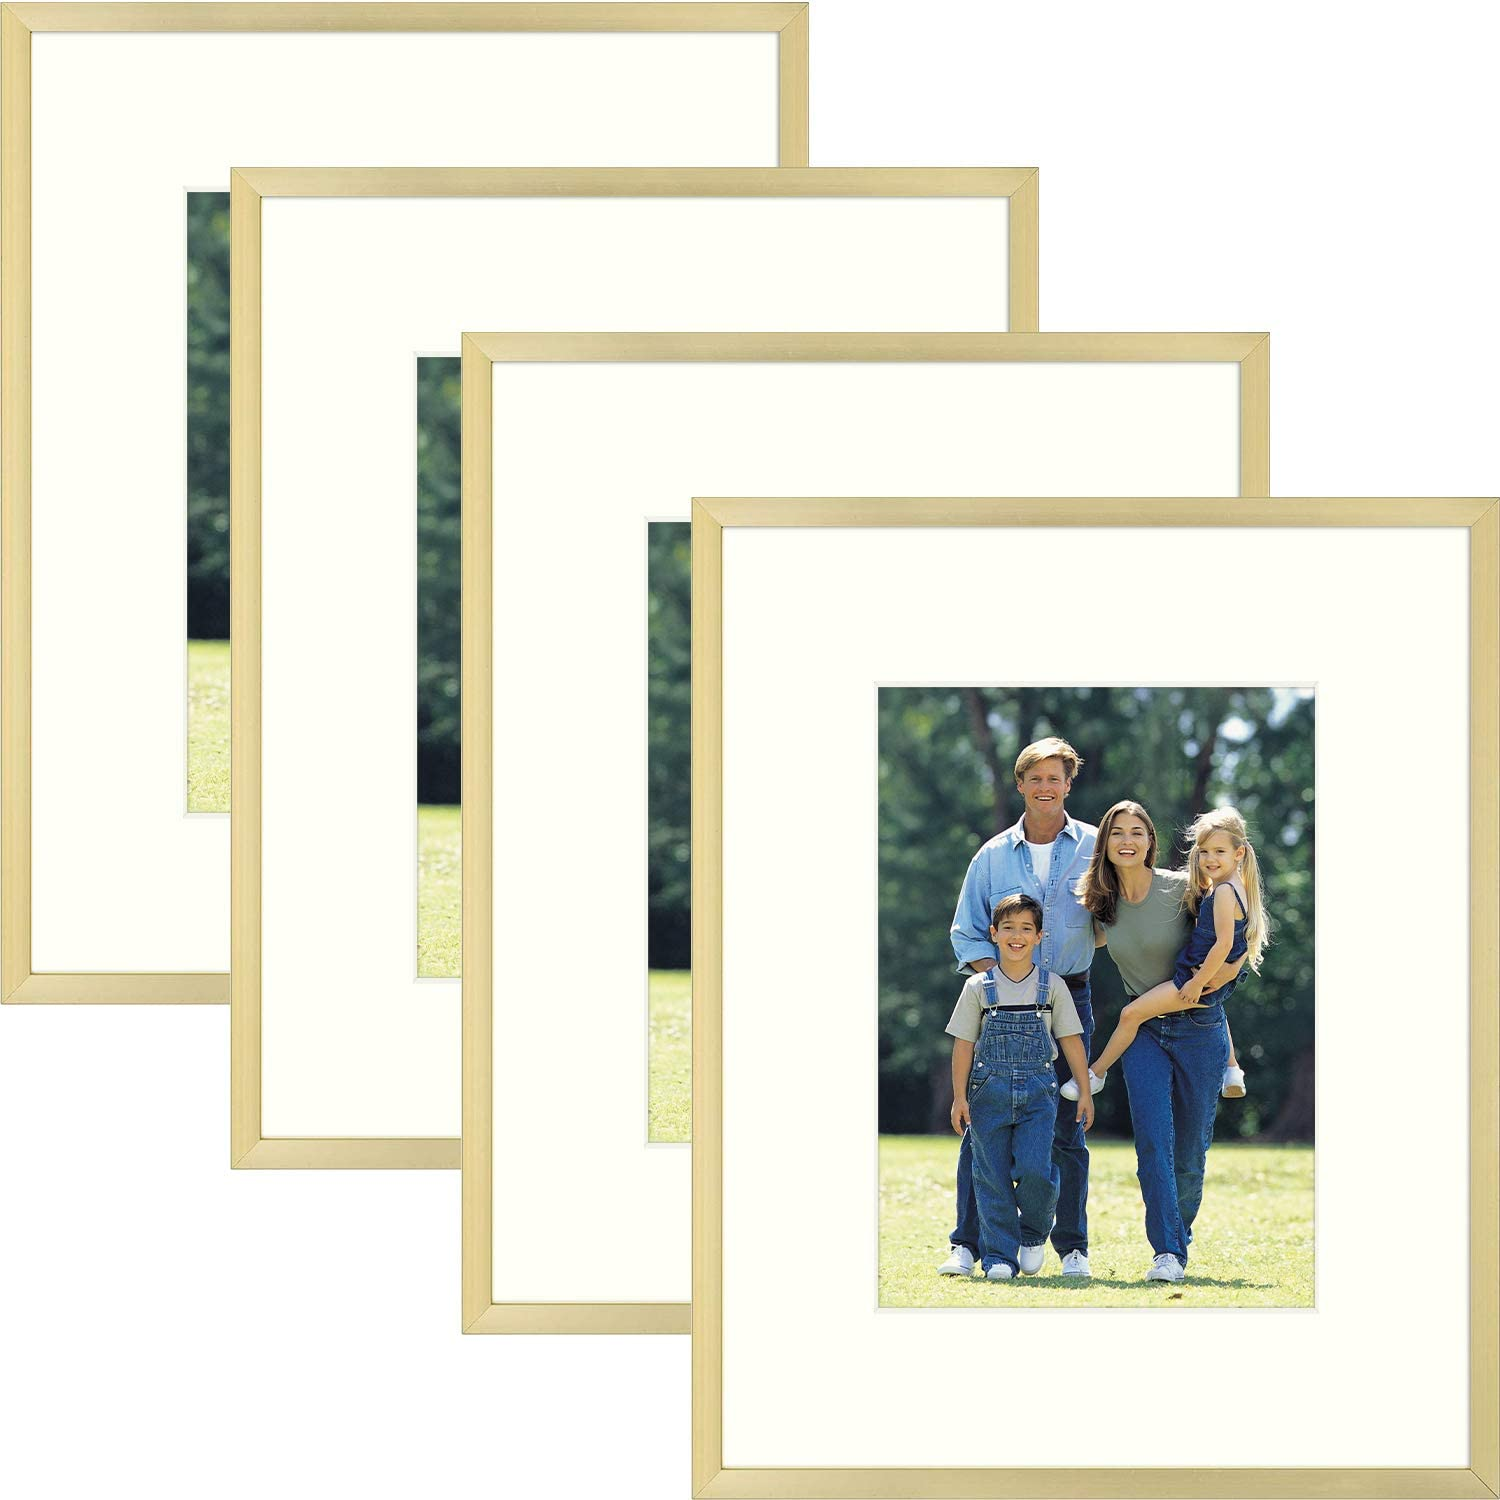 Golden State Columbus Mall Art Aluminum Picture Frame Pi Glass -8x10 and free Real